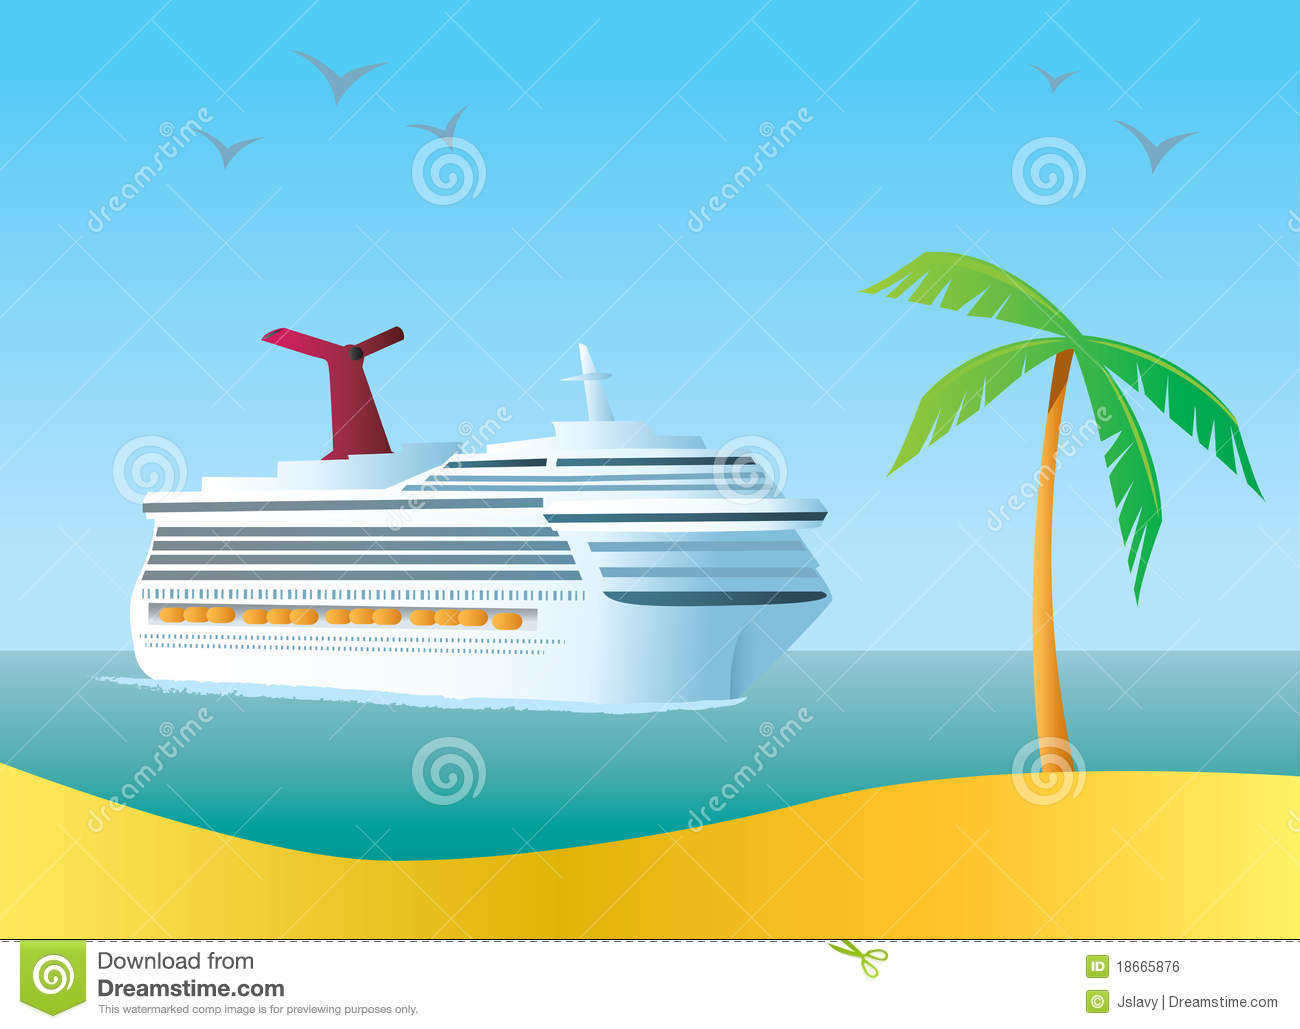 Cruise Ship stock vector. Illustration of port, tropical - 18665876